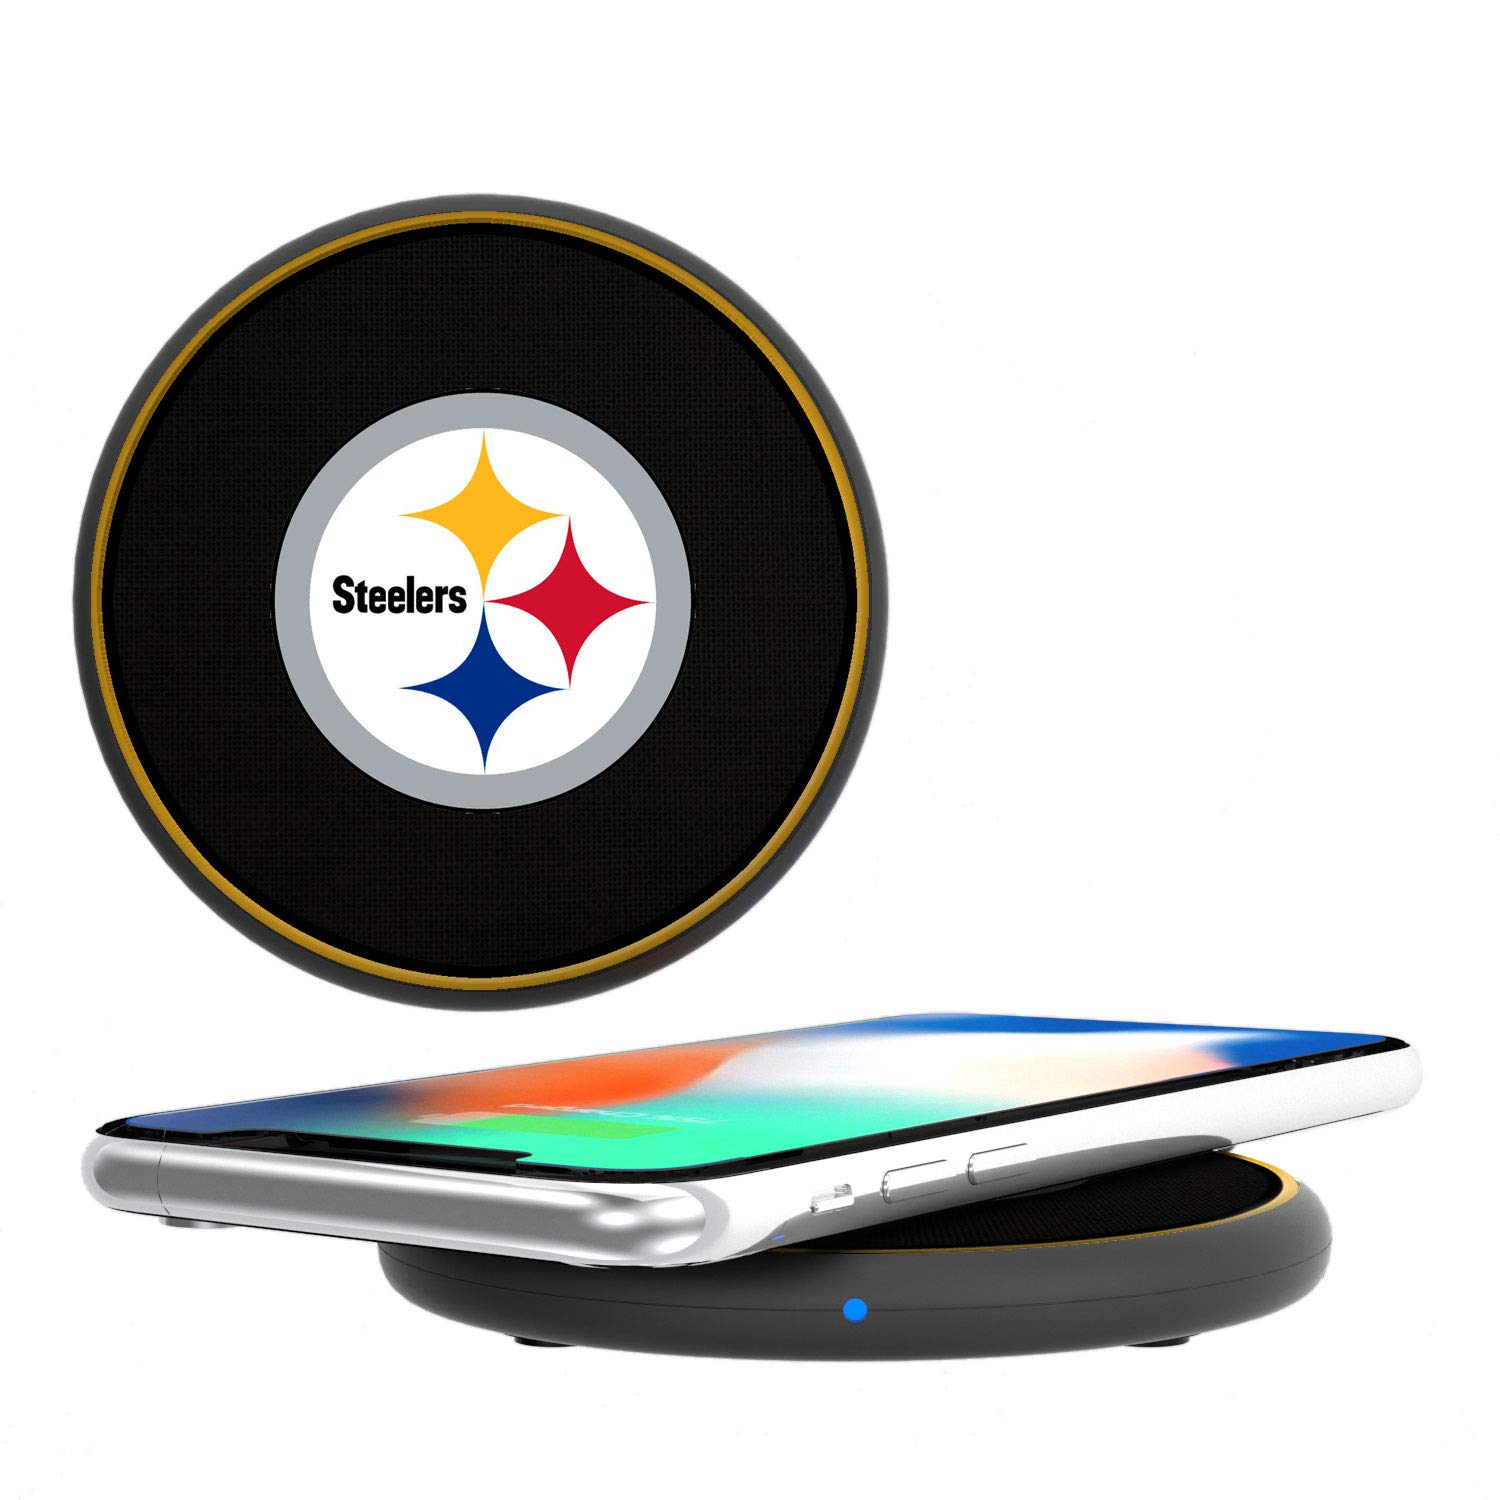 Keyscaper KCHGW1-KNFL-PSTS01 Pittsburgh SteelersWireless Charger with Diagonal Stripe Design